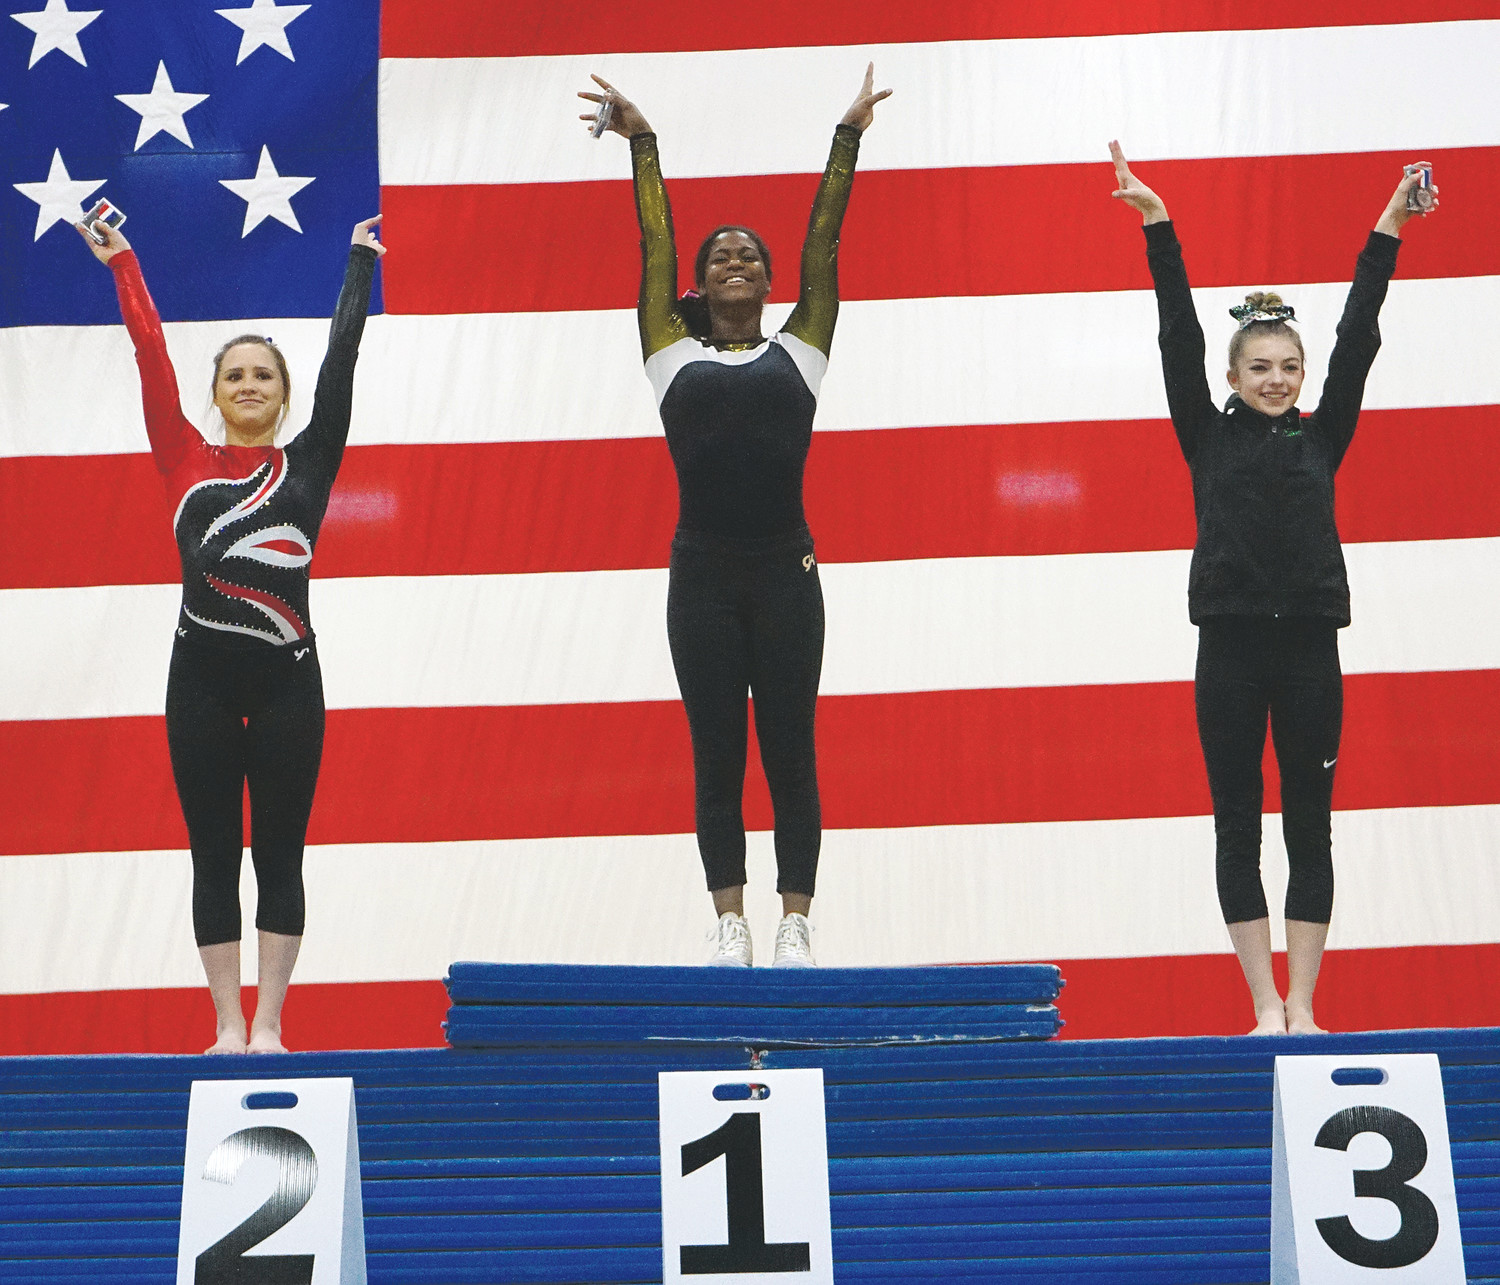 Green Mountain senior Ramya Sinha, middle, stands atop the podium during the award ceremony of the Class 4A vault winners Nov. 4 at Thornton High School. Sinha also placed second in the uneven bars and took third in the 4A all-around competition.